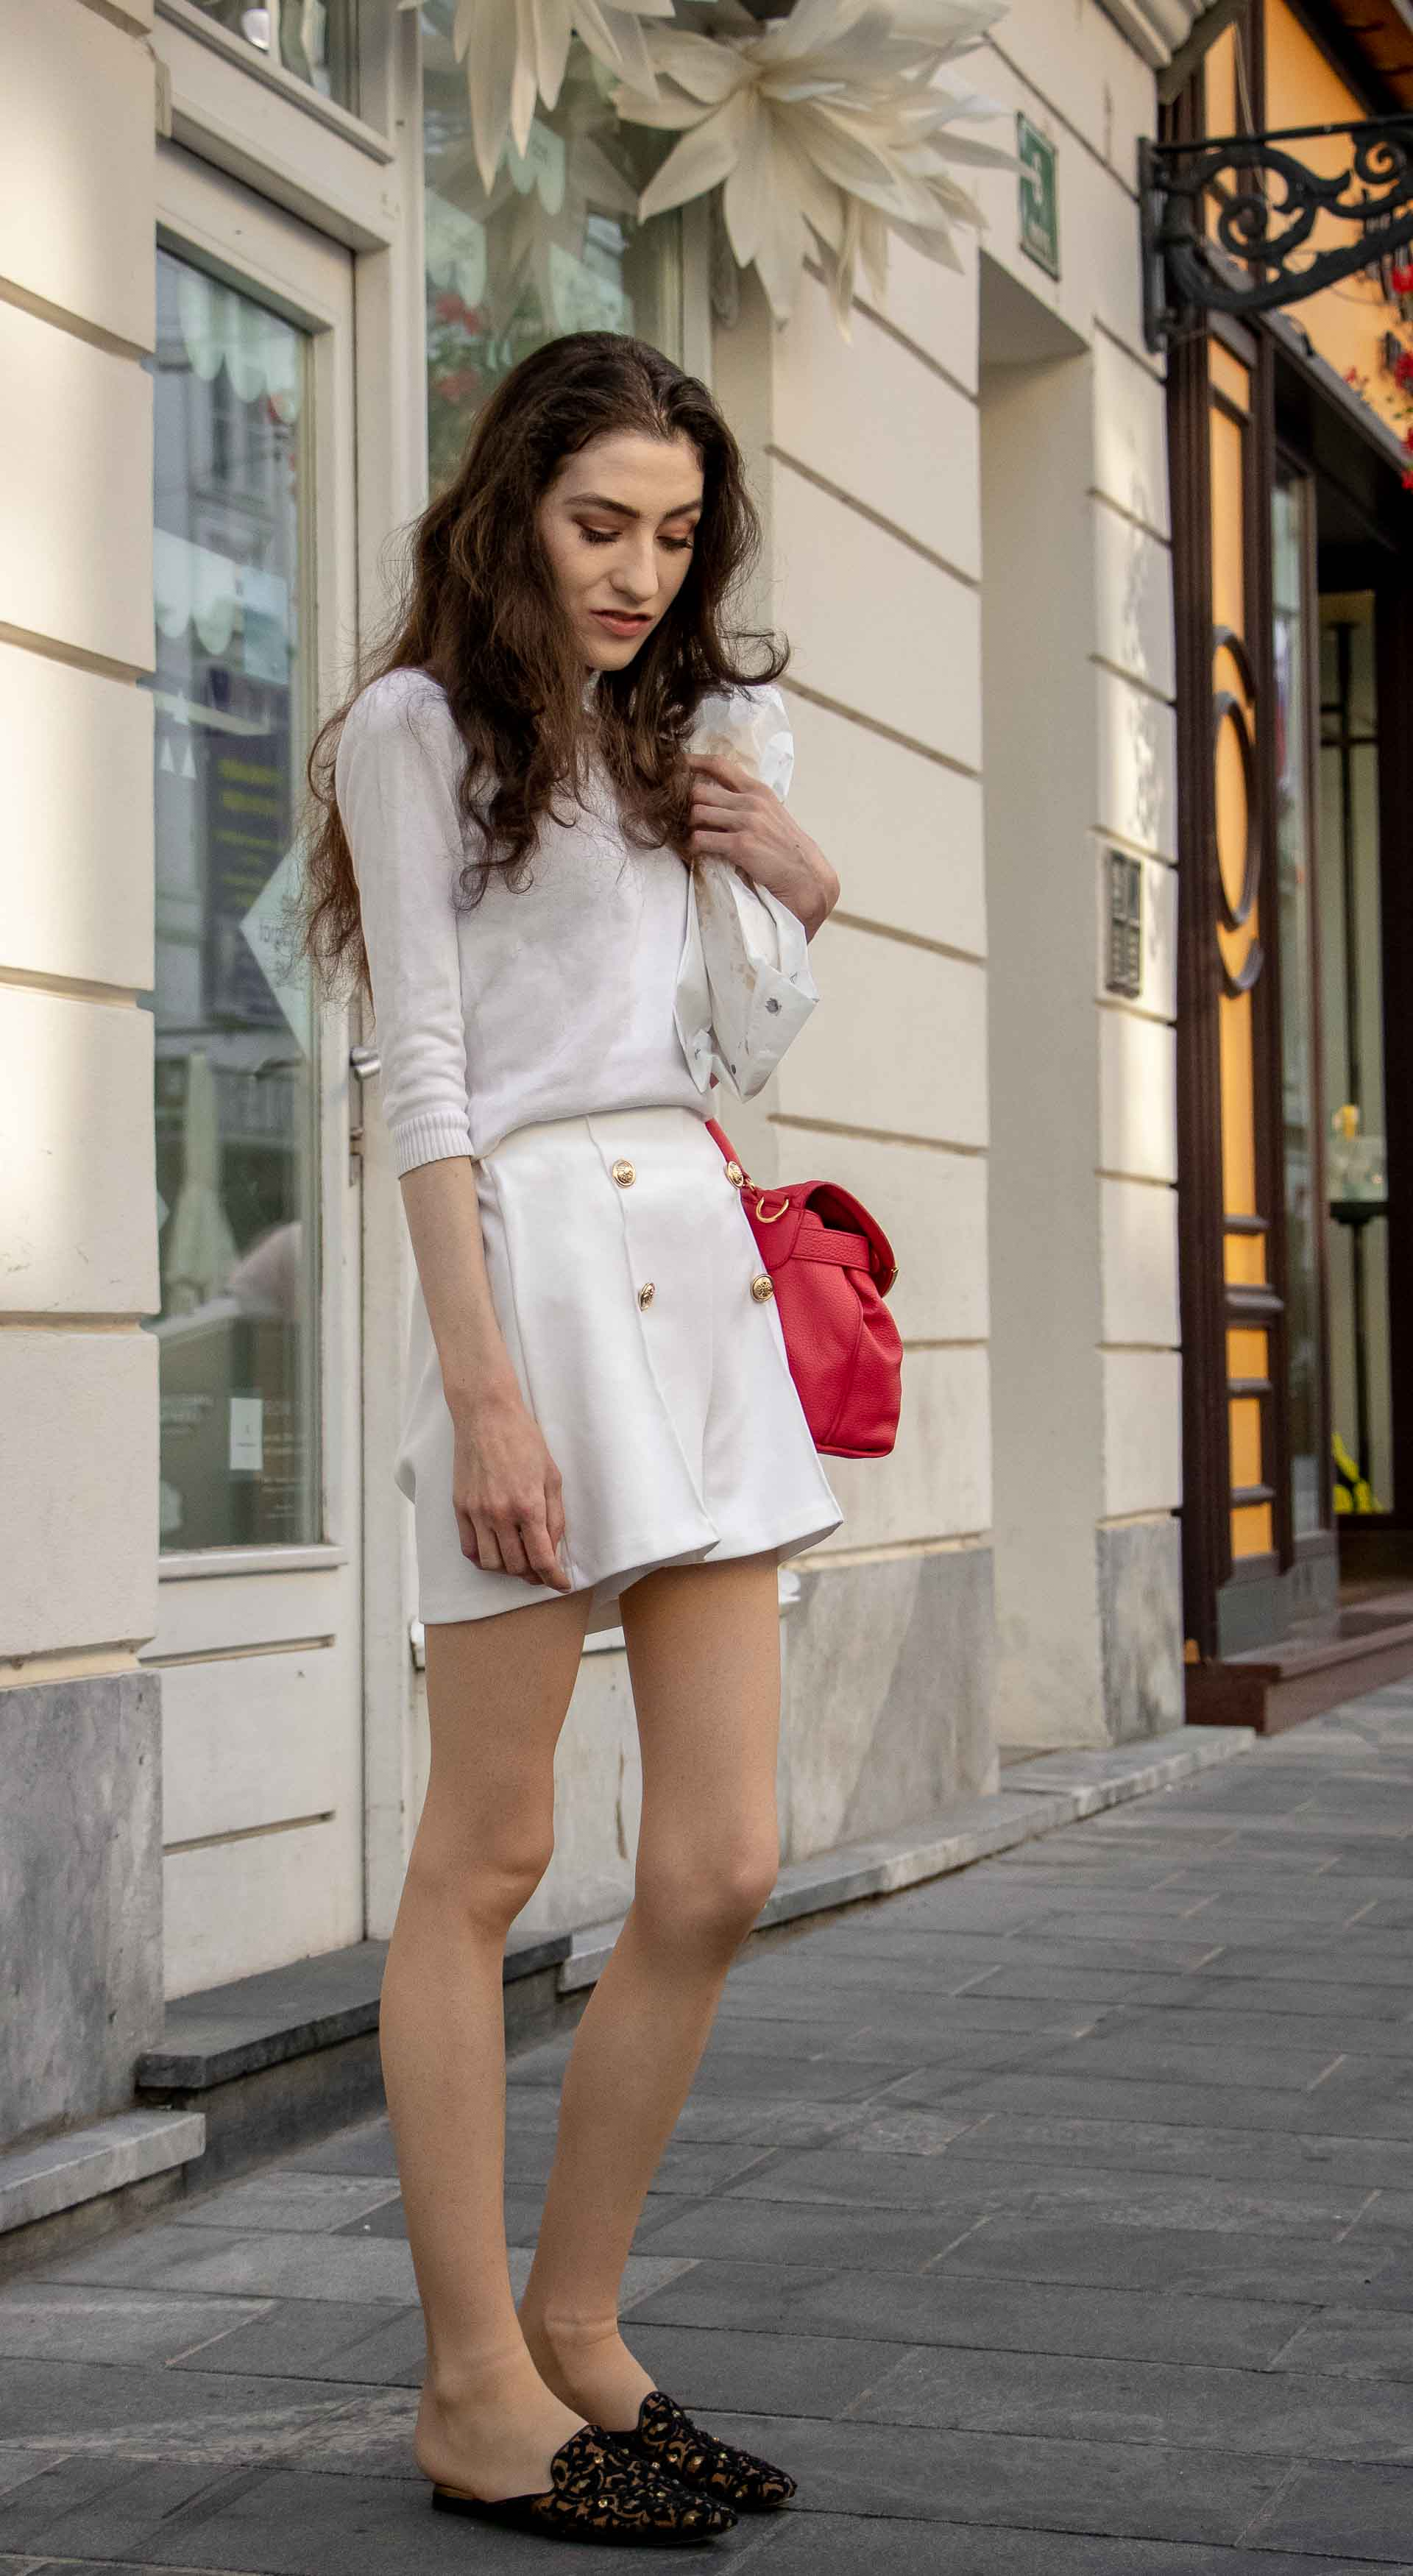 Beautiful Slovenian Fashion Blogger Veronika Lipar of Brunette from Wall wearing all in white outfit, a white sweater, white tailored shorts, black flat slipper mules, pink top handle bag, a paper bag while standing on the street in Ljubljana